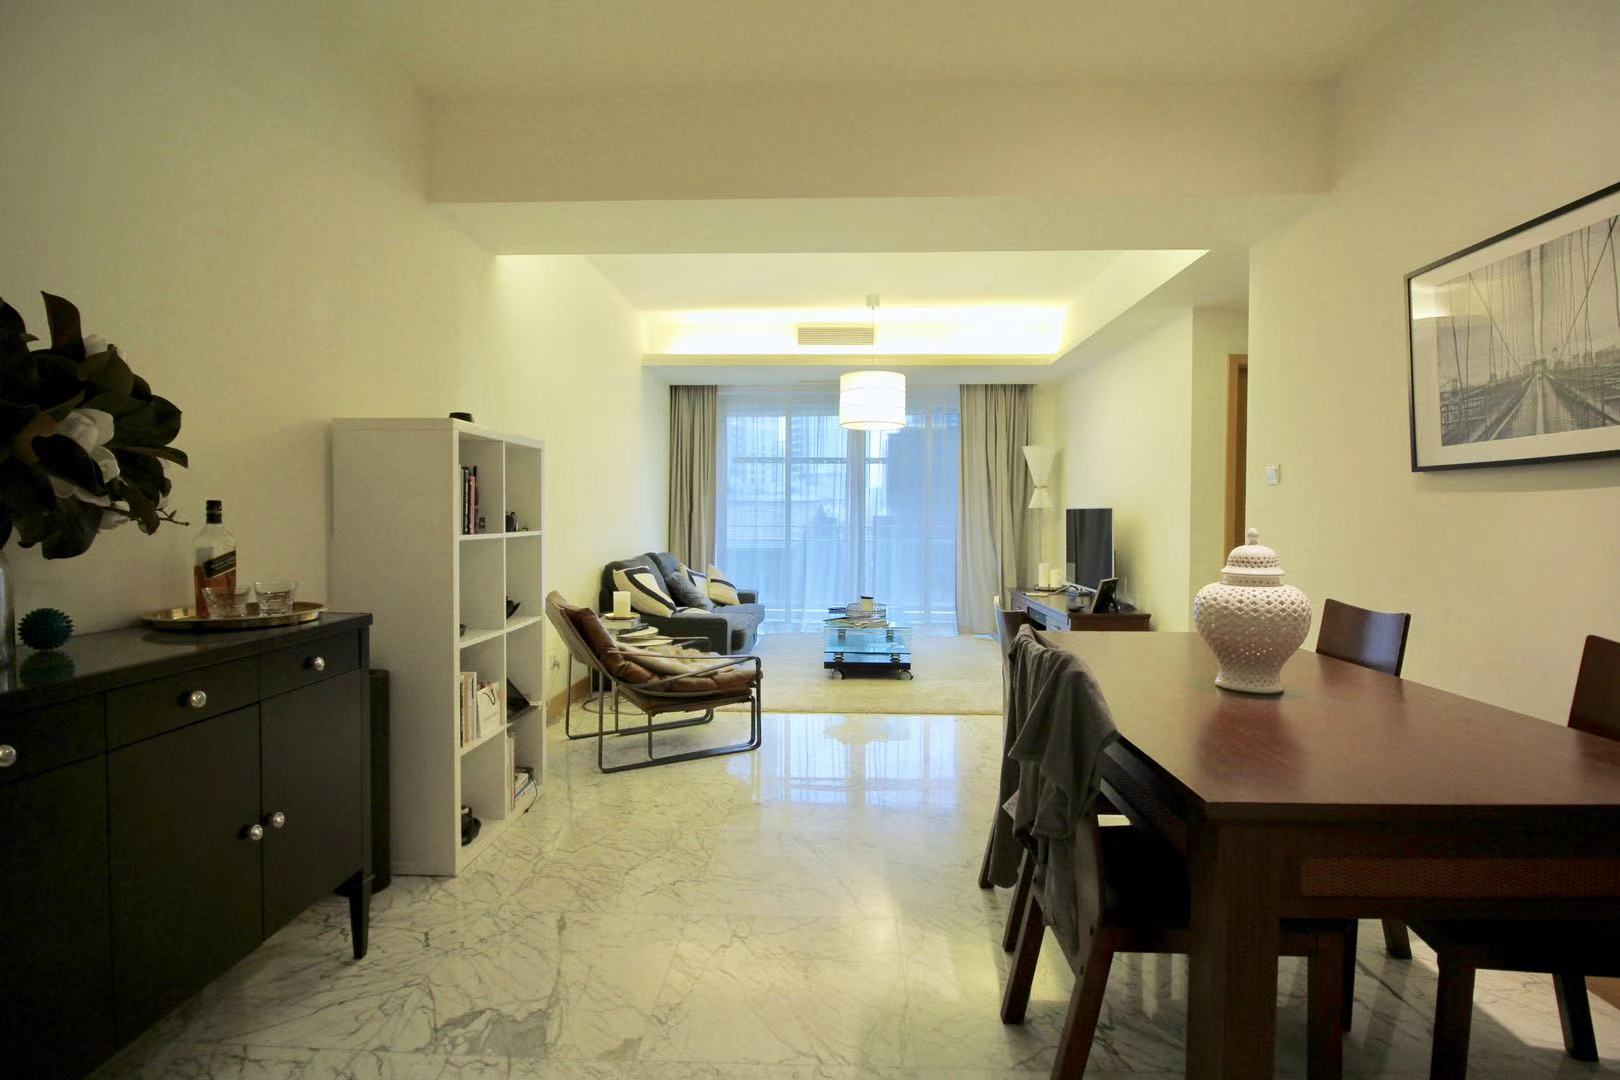 Decent 2br in Jingan 4 seasons Near West nanjing road of line 2/12/13&HKRI